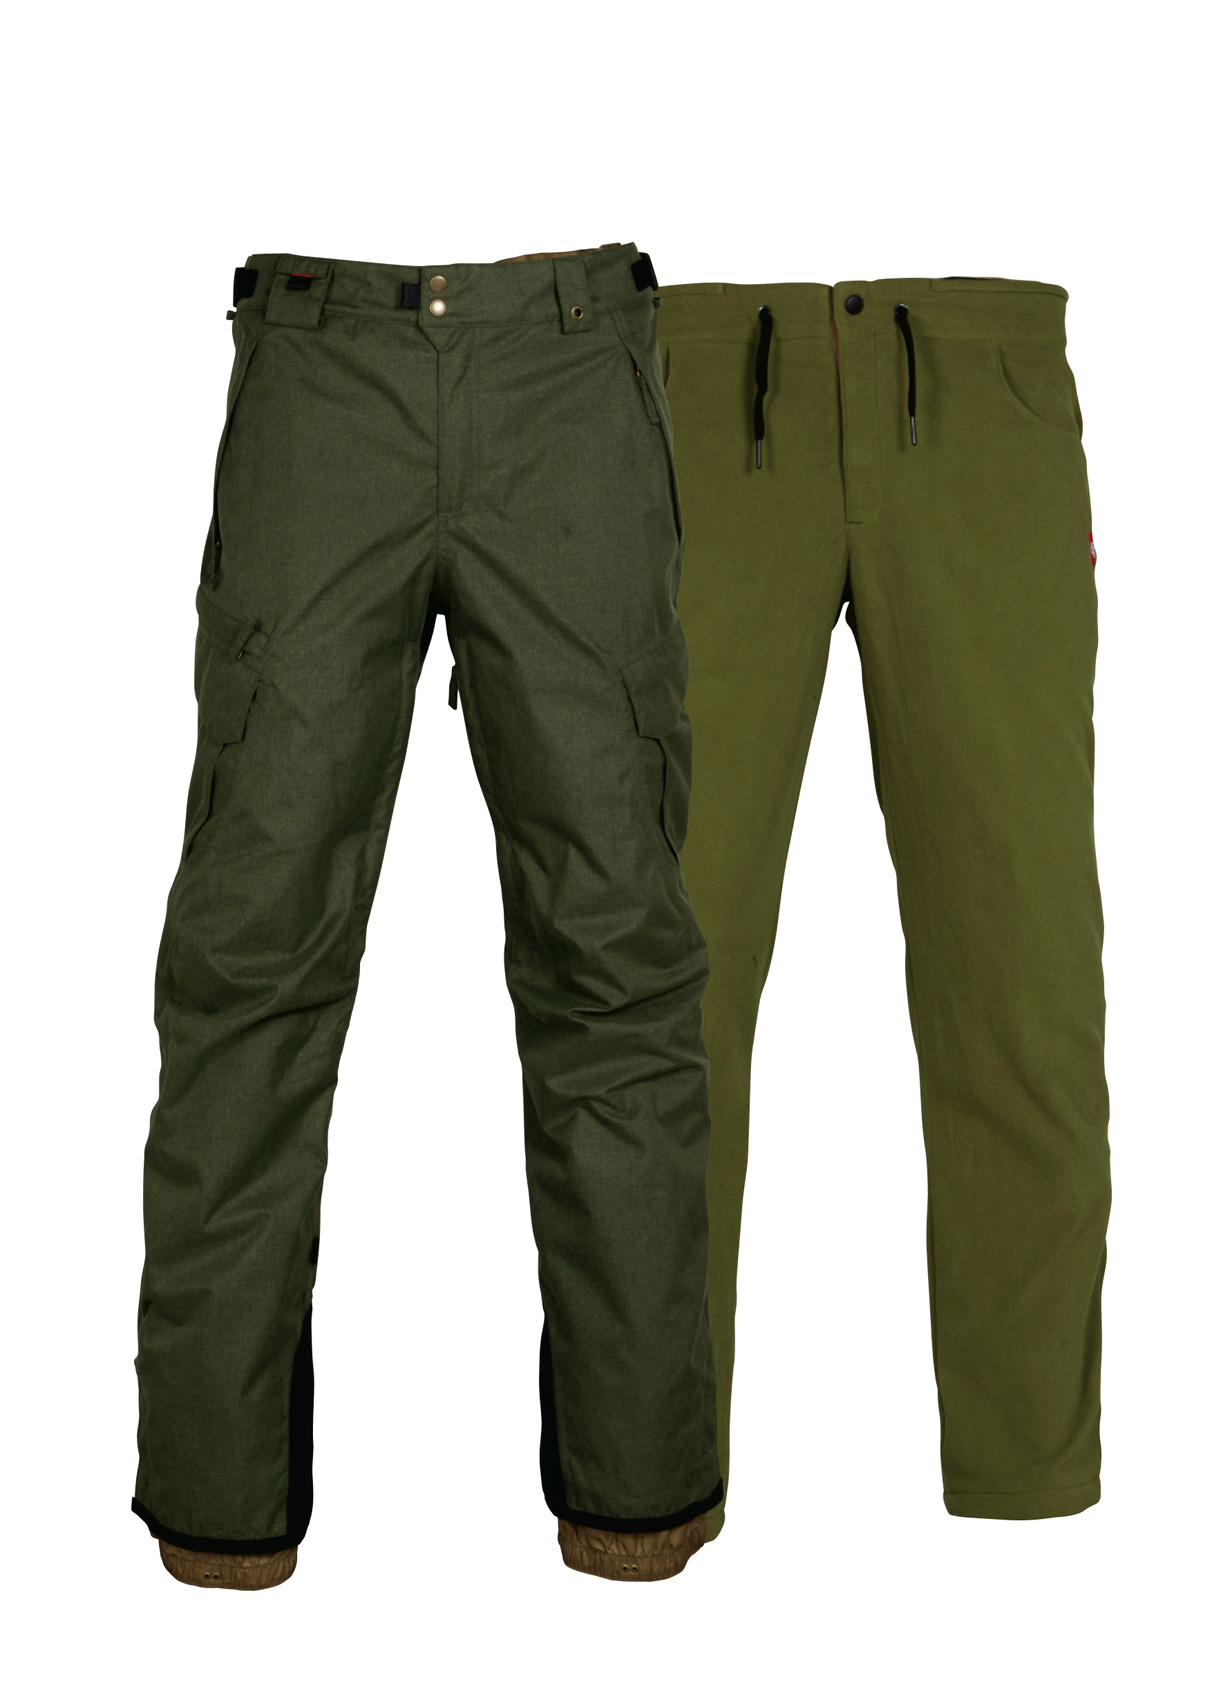 96a7c9d4eecb 686 Smarty Cargo Snowboard Pants 2018